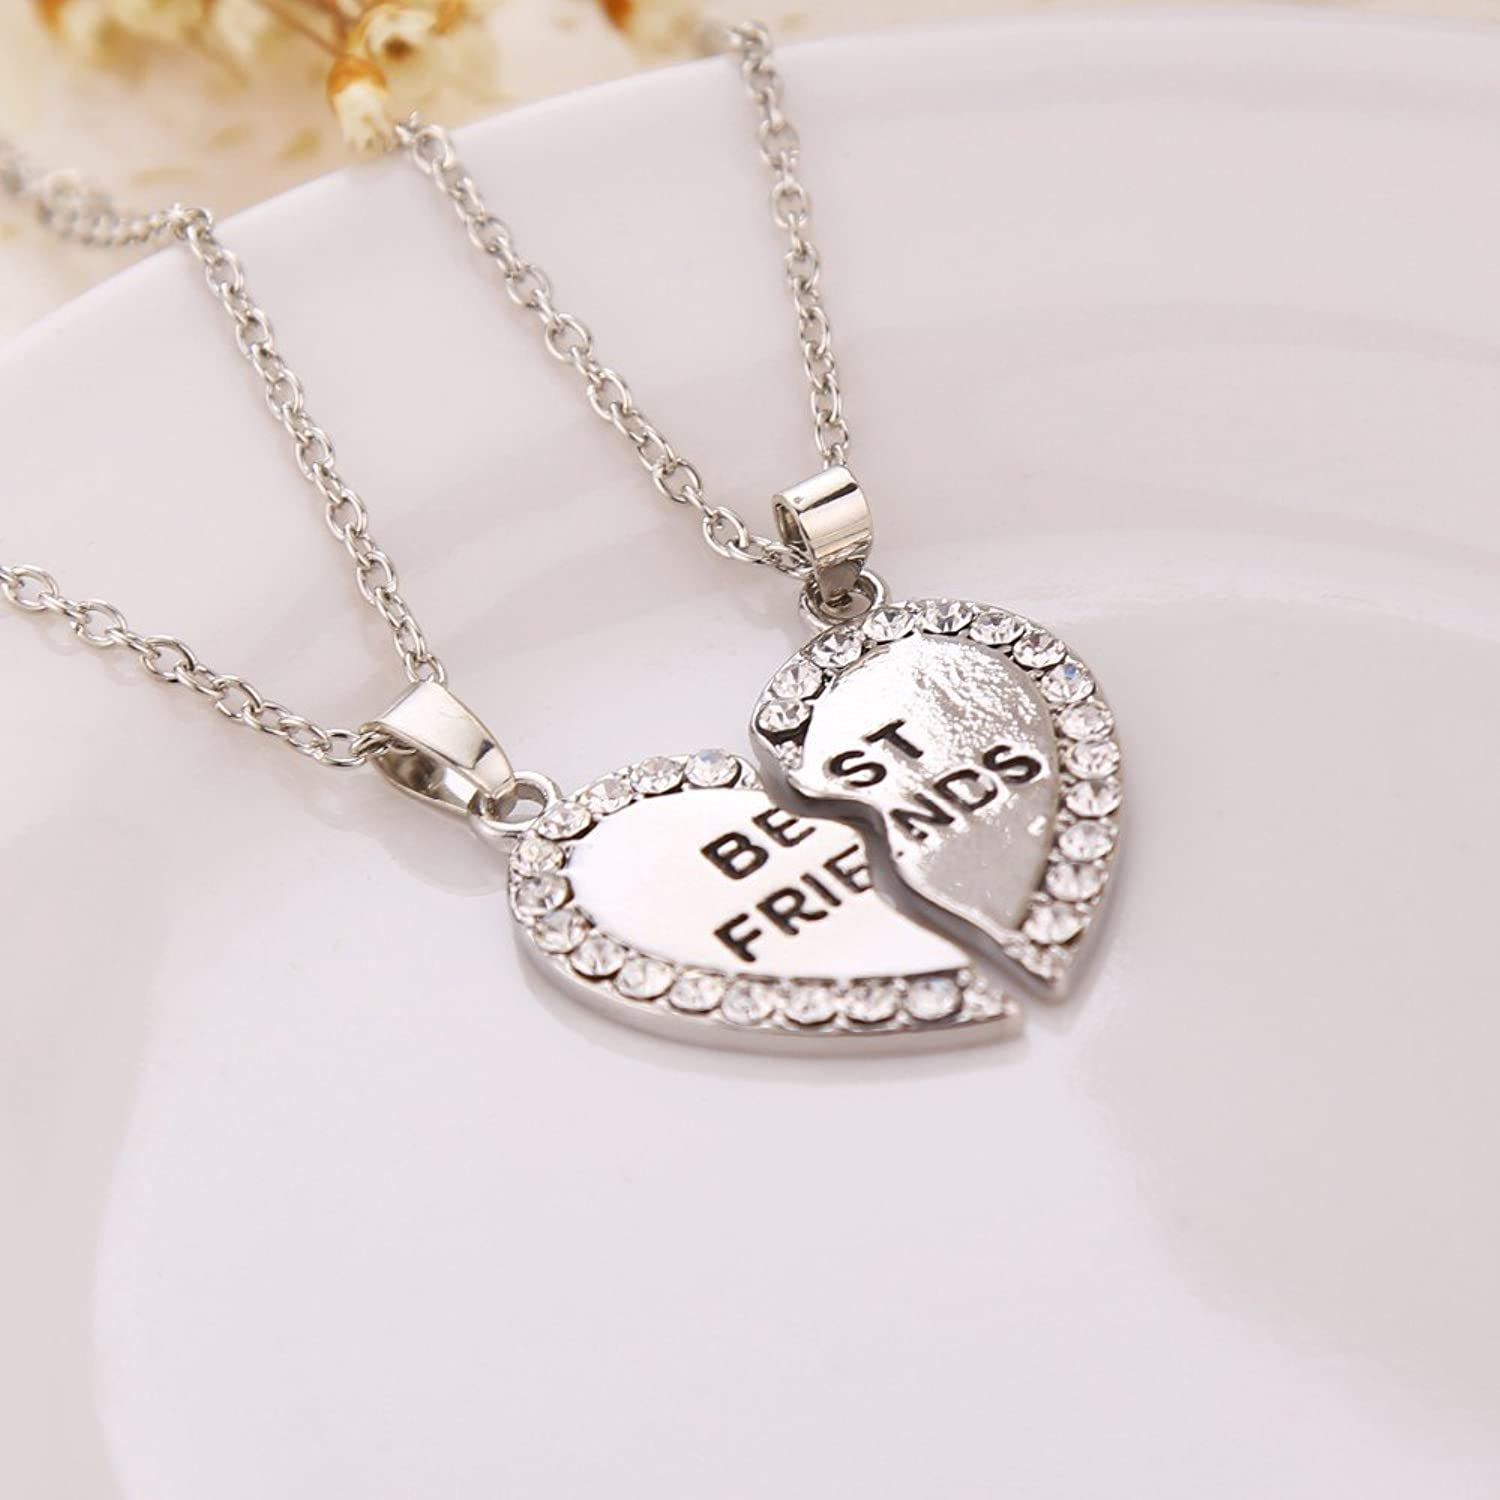 couple product necklace boy gift birthday girl book dating love jewelry vintage word